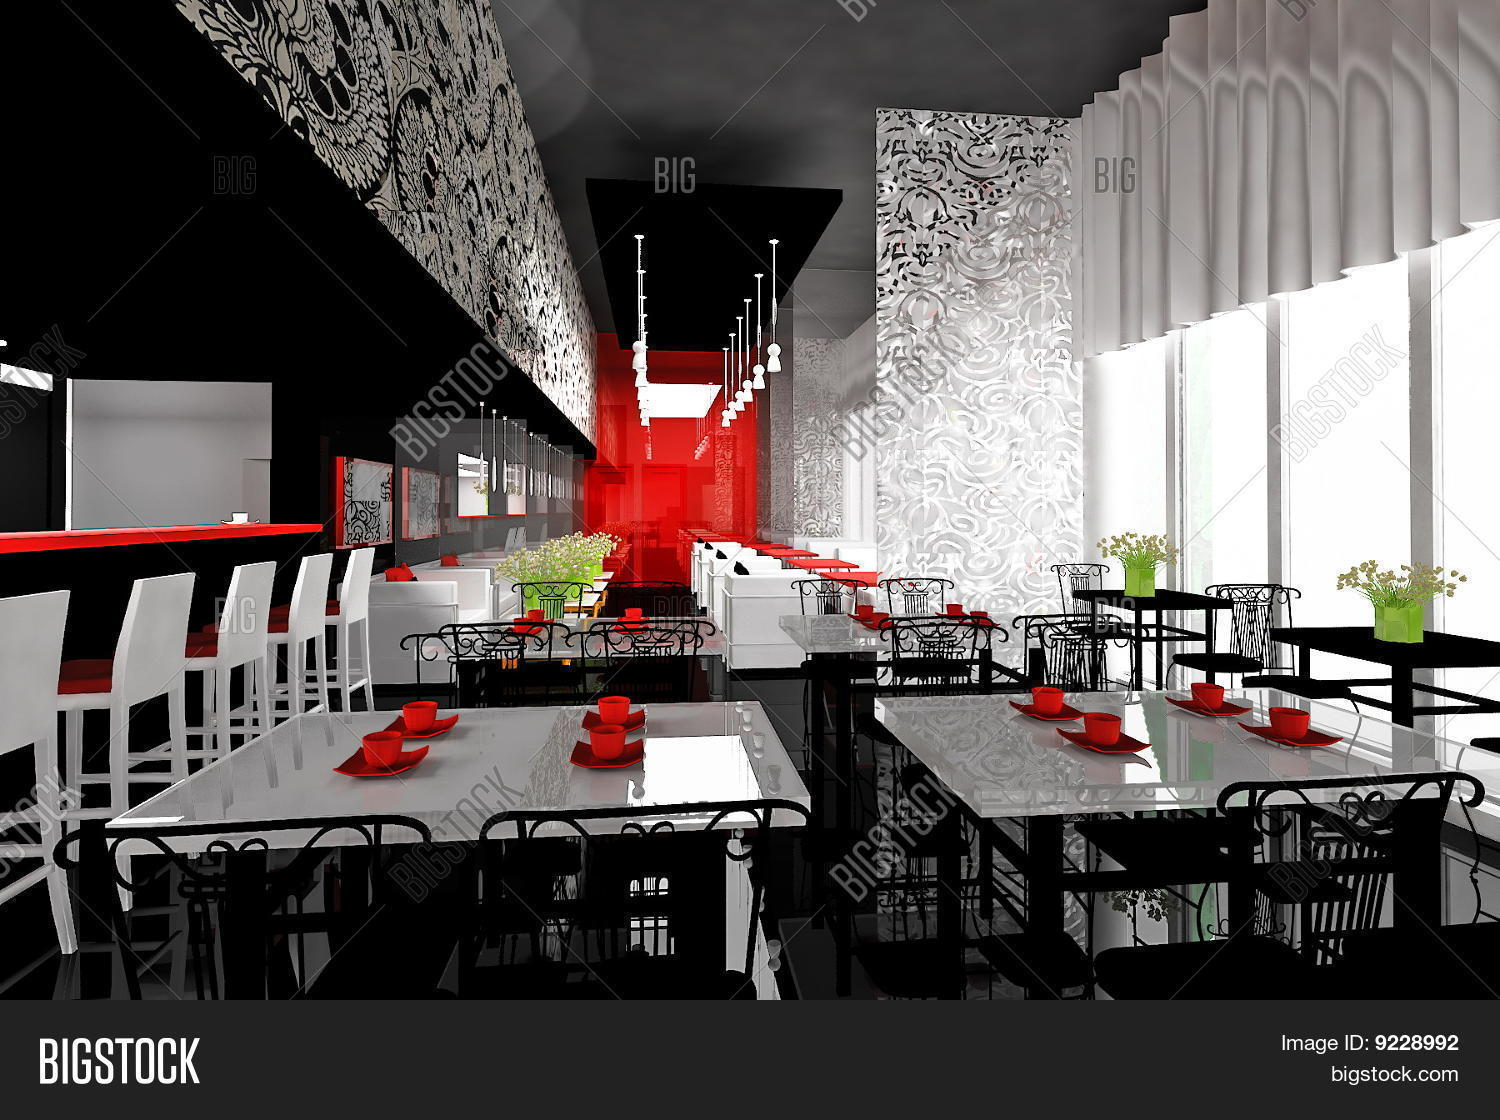 nice restaurant interior in red and black colors stock photo